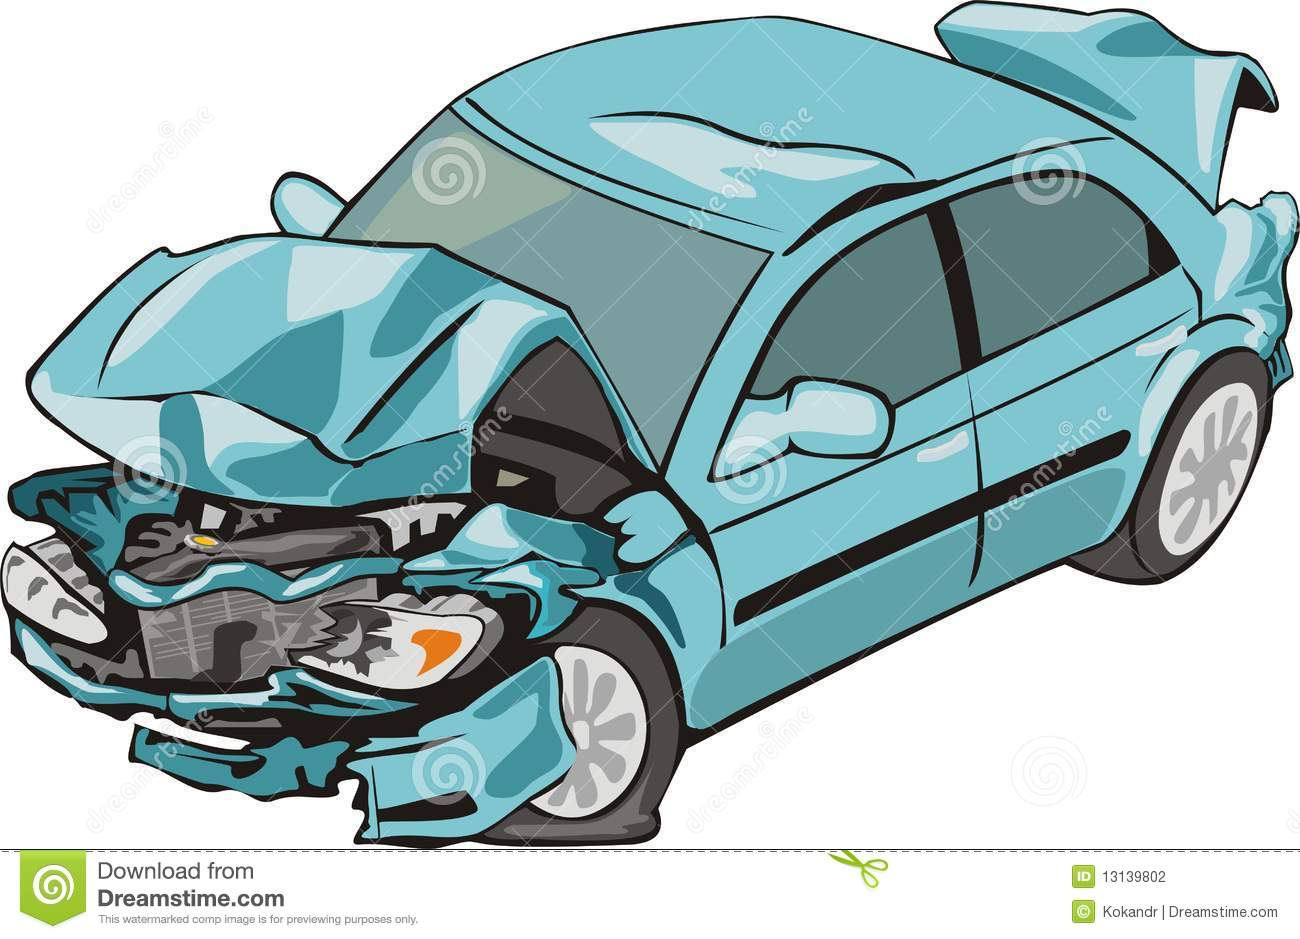 68 Simple How To Draw Cartoon Car Crash.